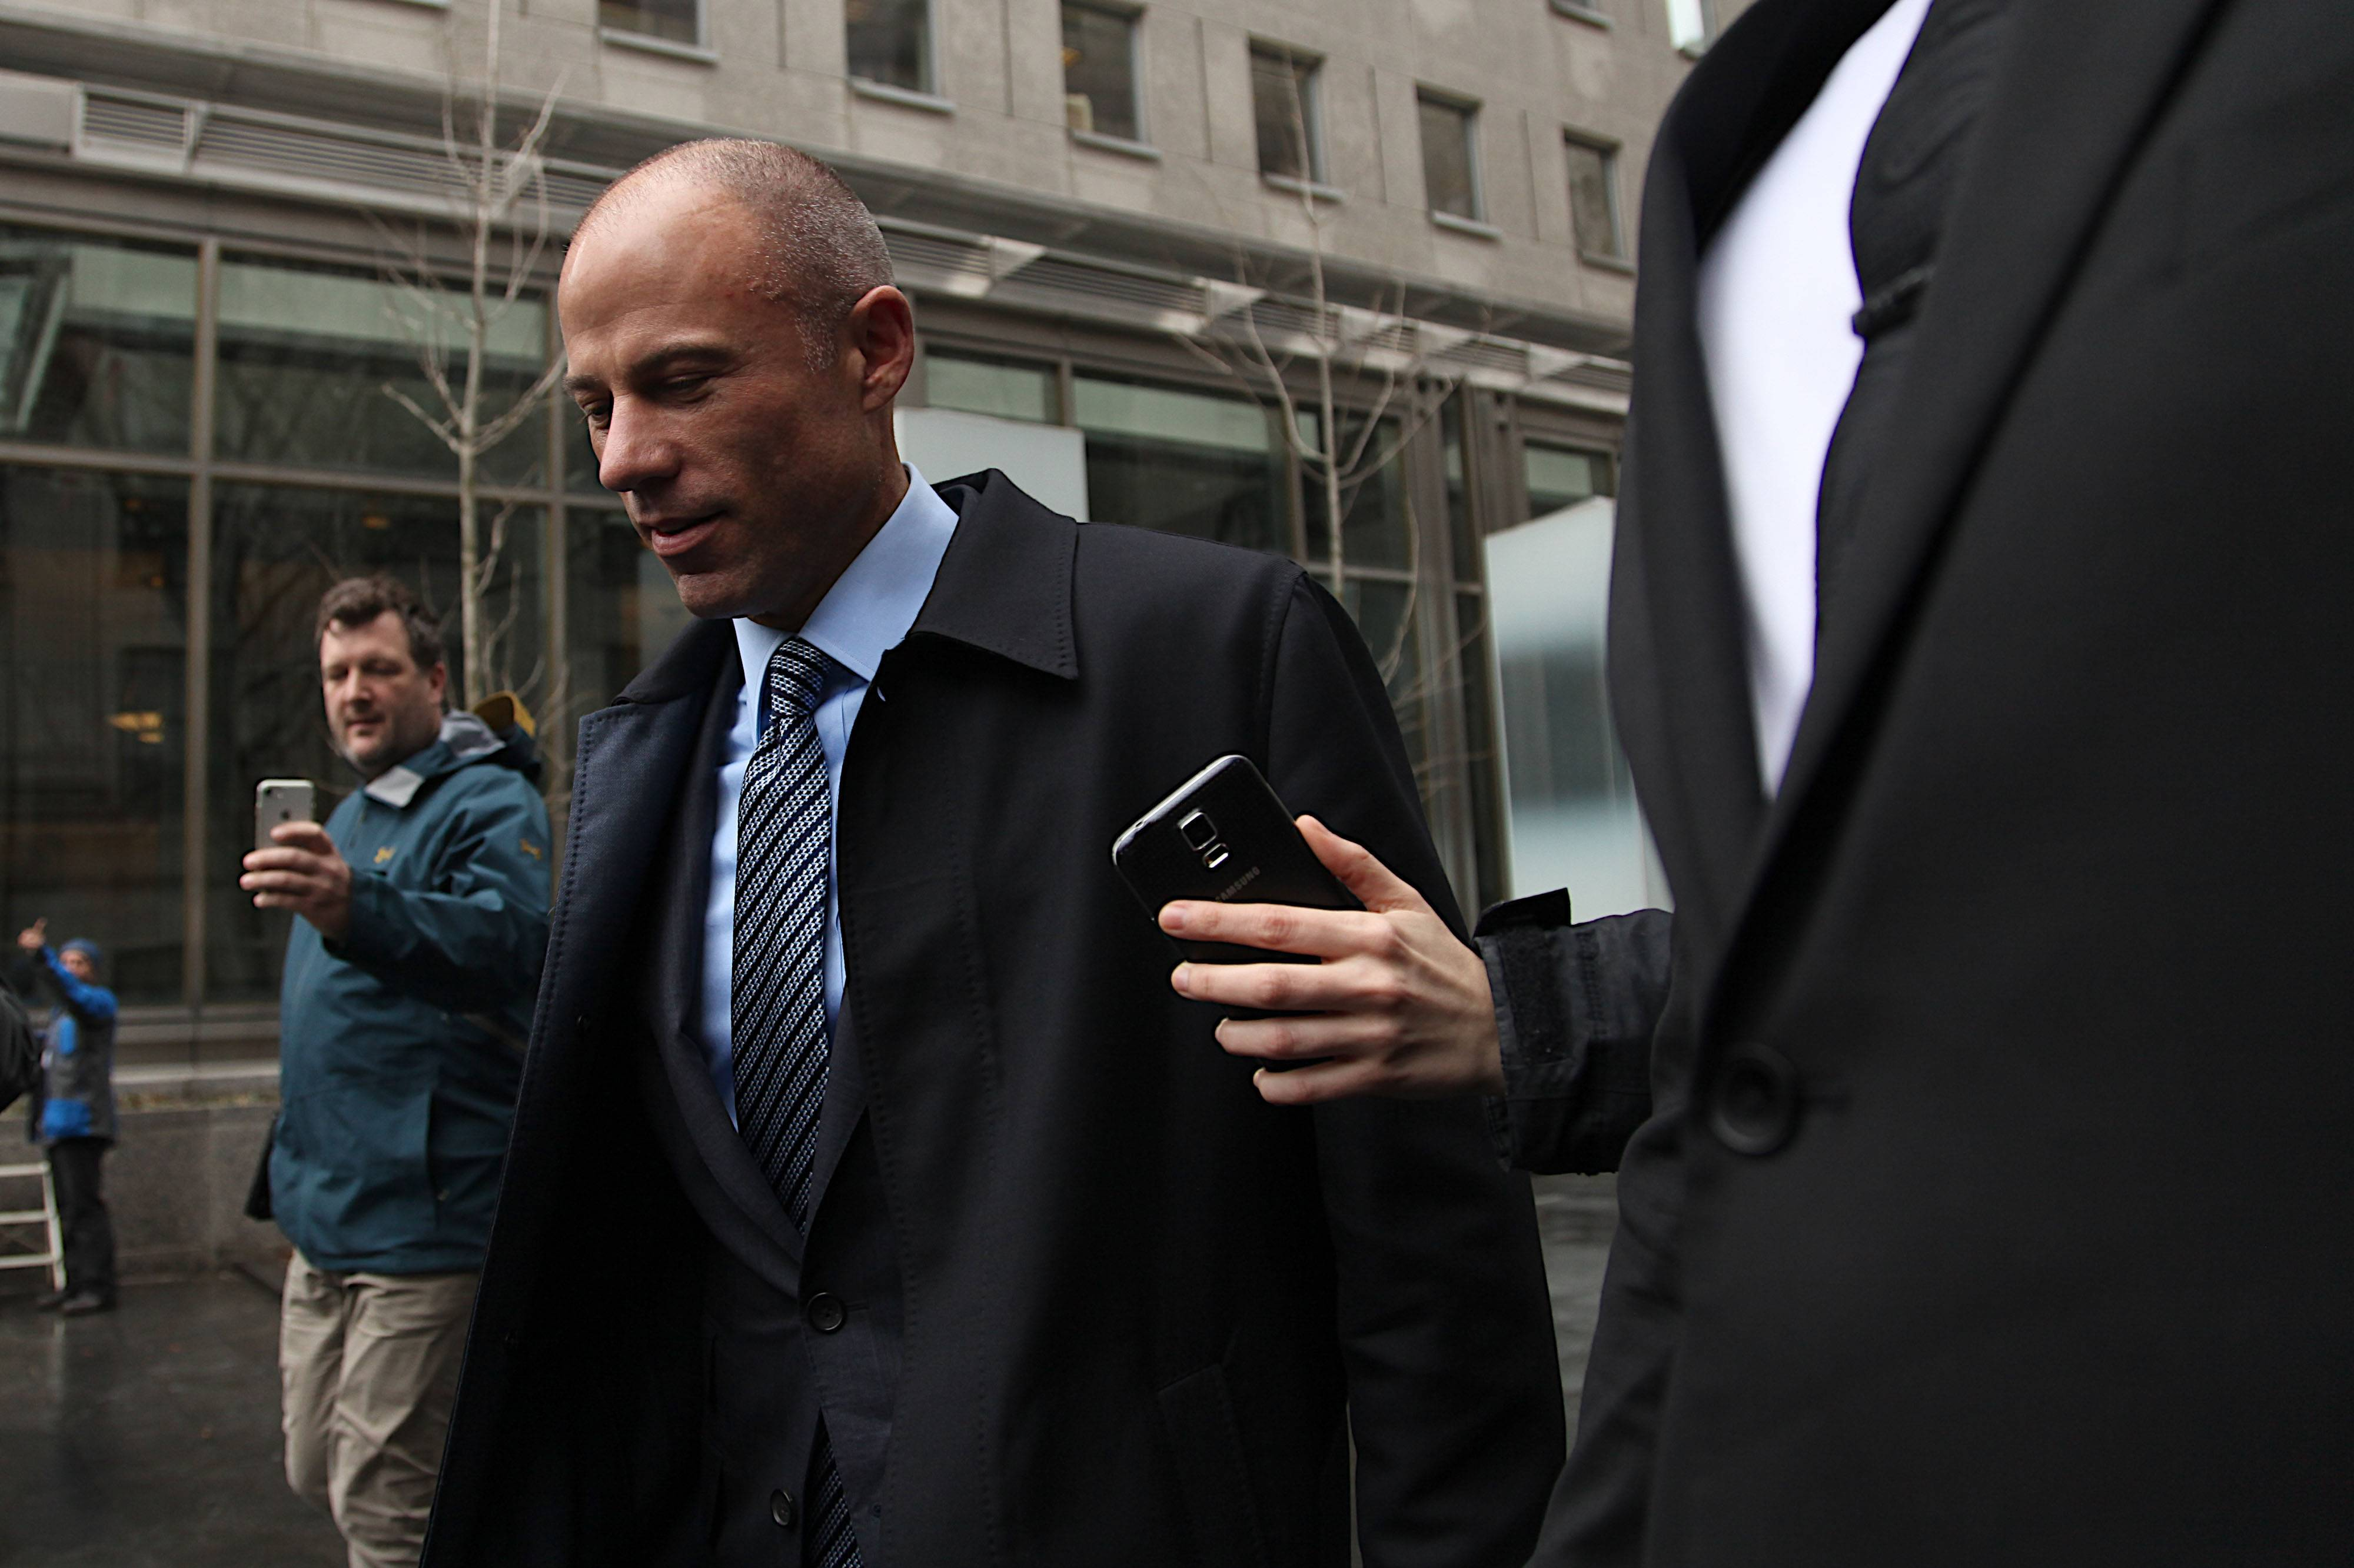 Michael Avenatti, lawyer of Stormy Daniels, arrives at Federal Court in New York on Monday.